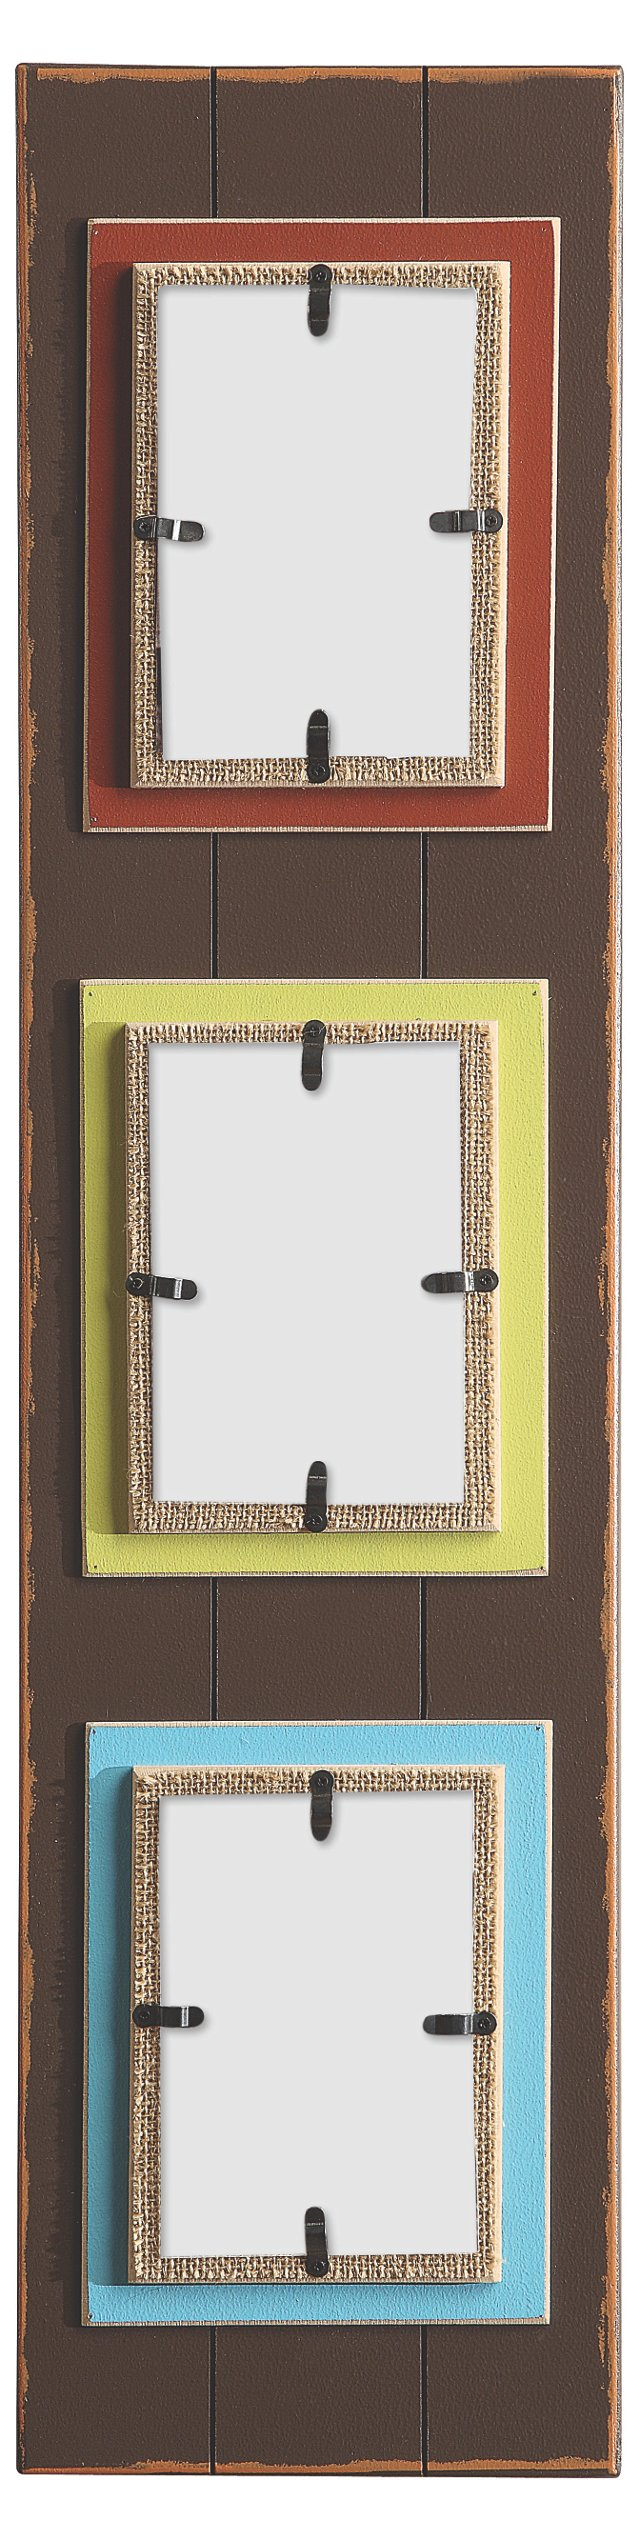 Vertical Photo Frames, 4x6, Asst of 3